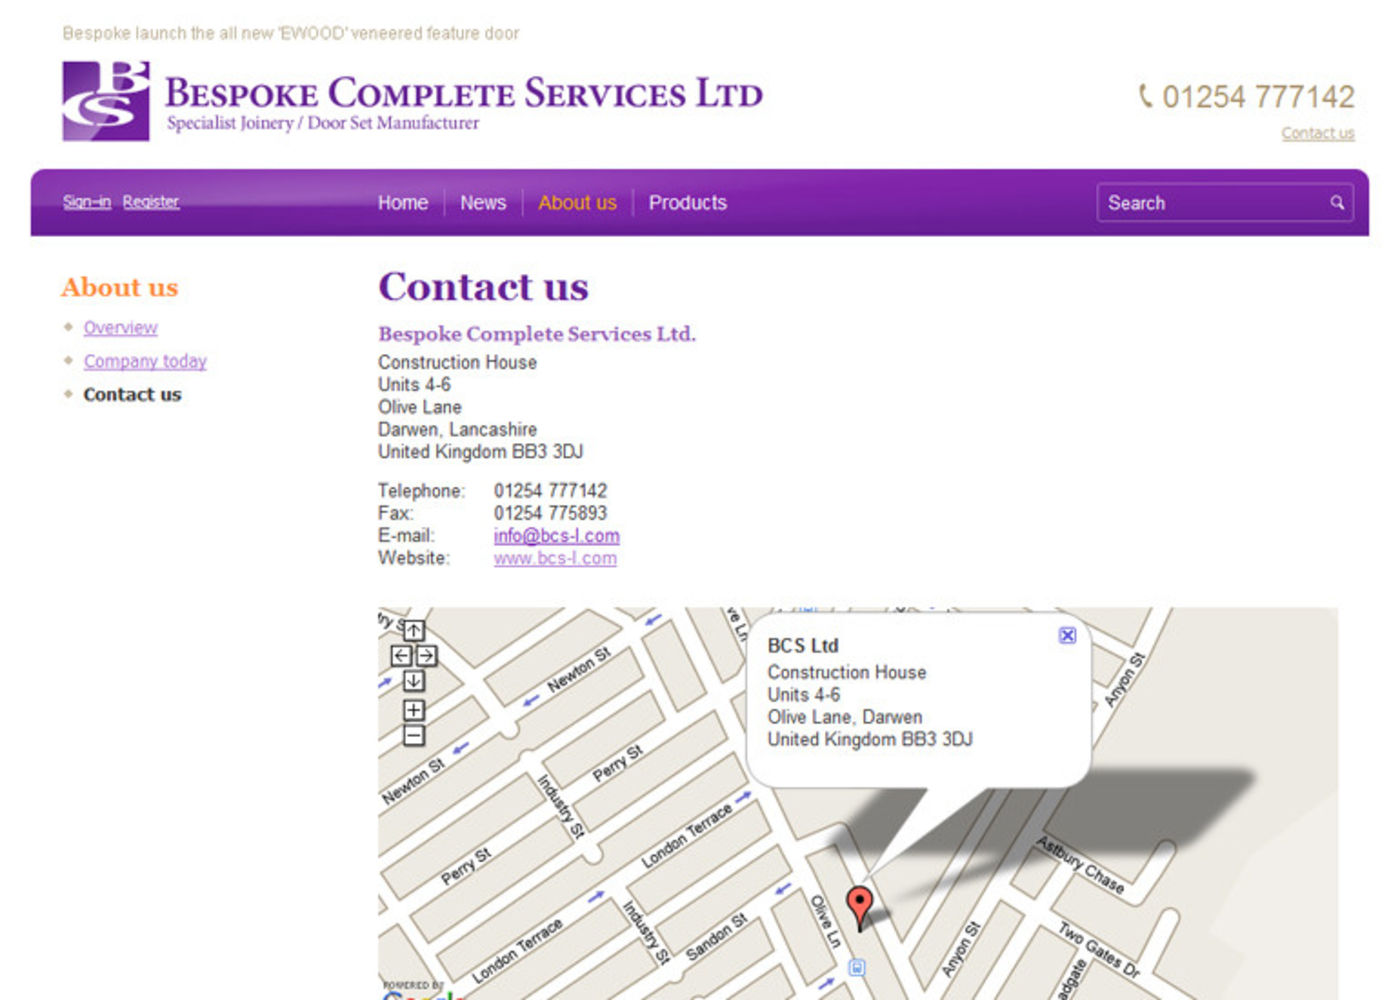 Bespoke Complete Services Ltd Contact us